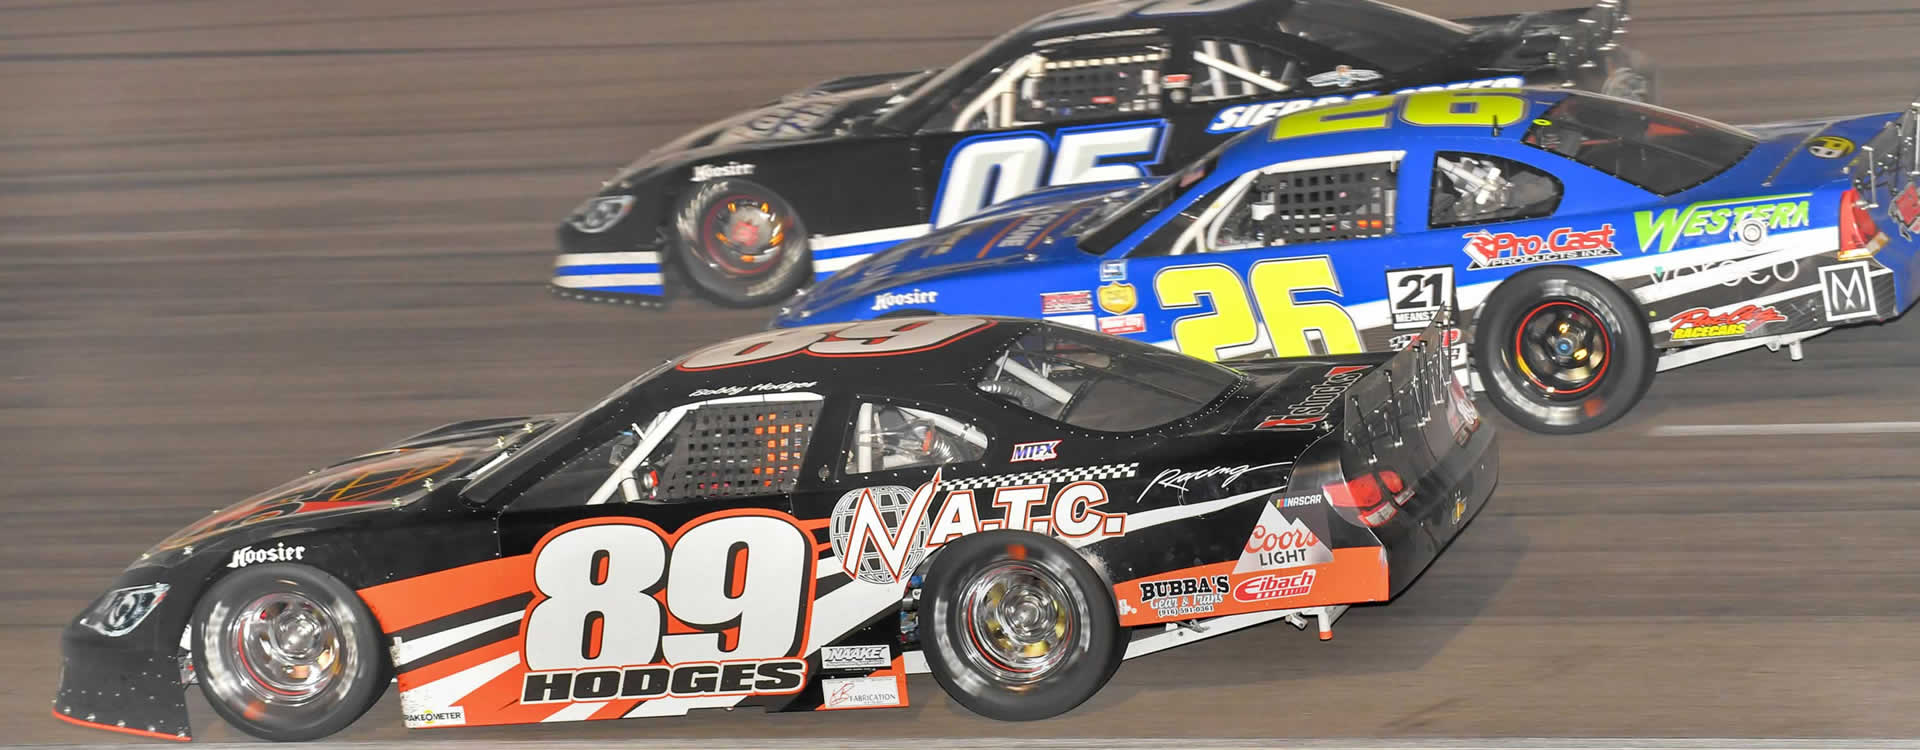 Kern County Raceway Park – Bakersfiled's Place To Race!